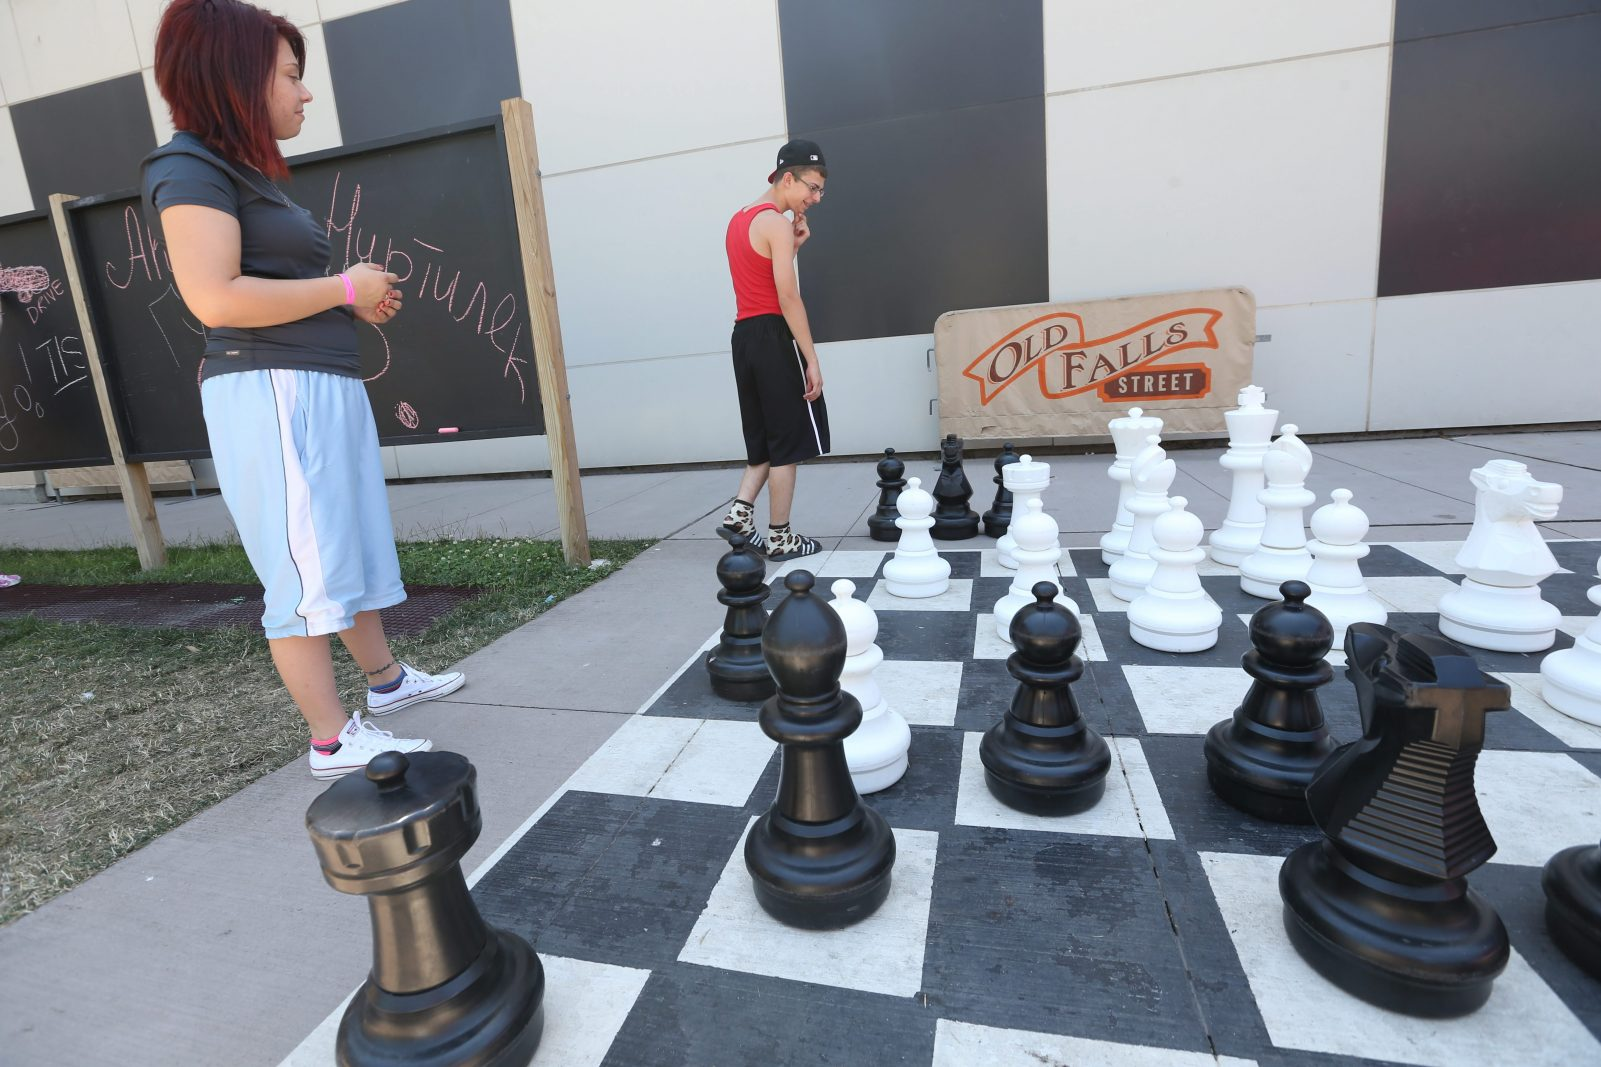 Old Falls Street in Niagara Falls has various activities for the family. Alex DeSena, 17, right, of Queens, and his sister Kaitlin DeSena, 22, of Cape Coral, Florida, play a giant sized chess game in an area filled with games and adirondack chairs, Tuesday, July 5, 2016. The siblings are visiting family. (Sharon Cantillon/Buffalo News)